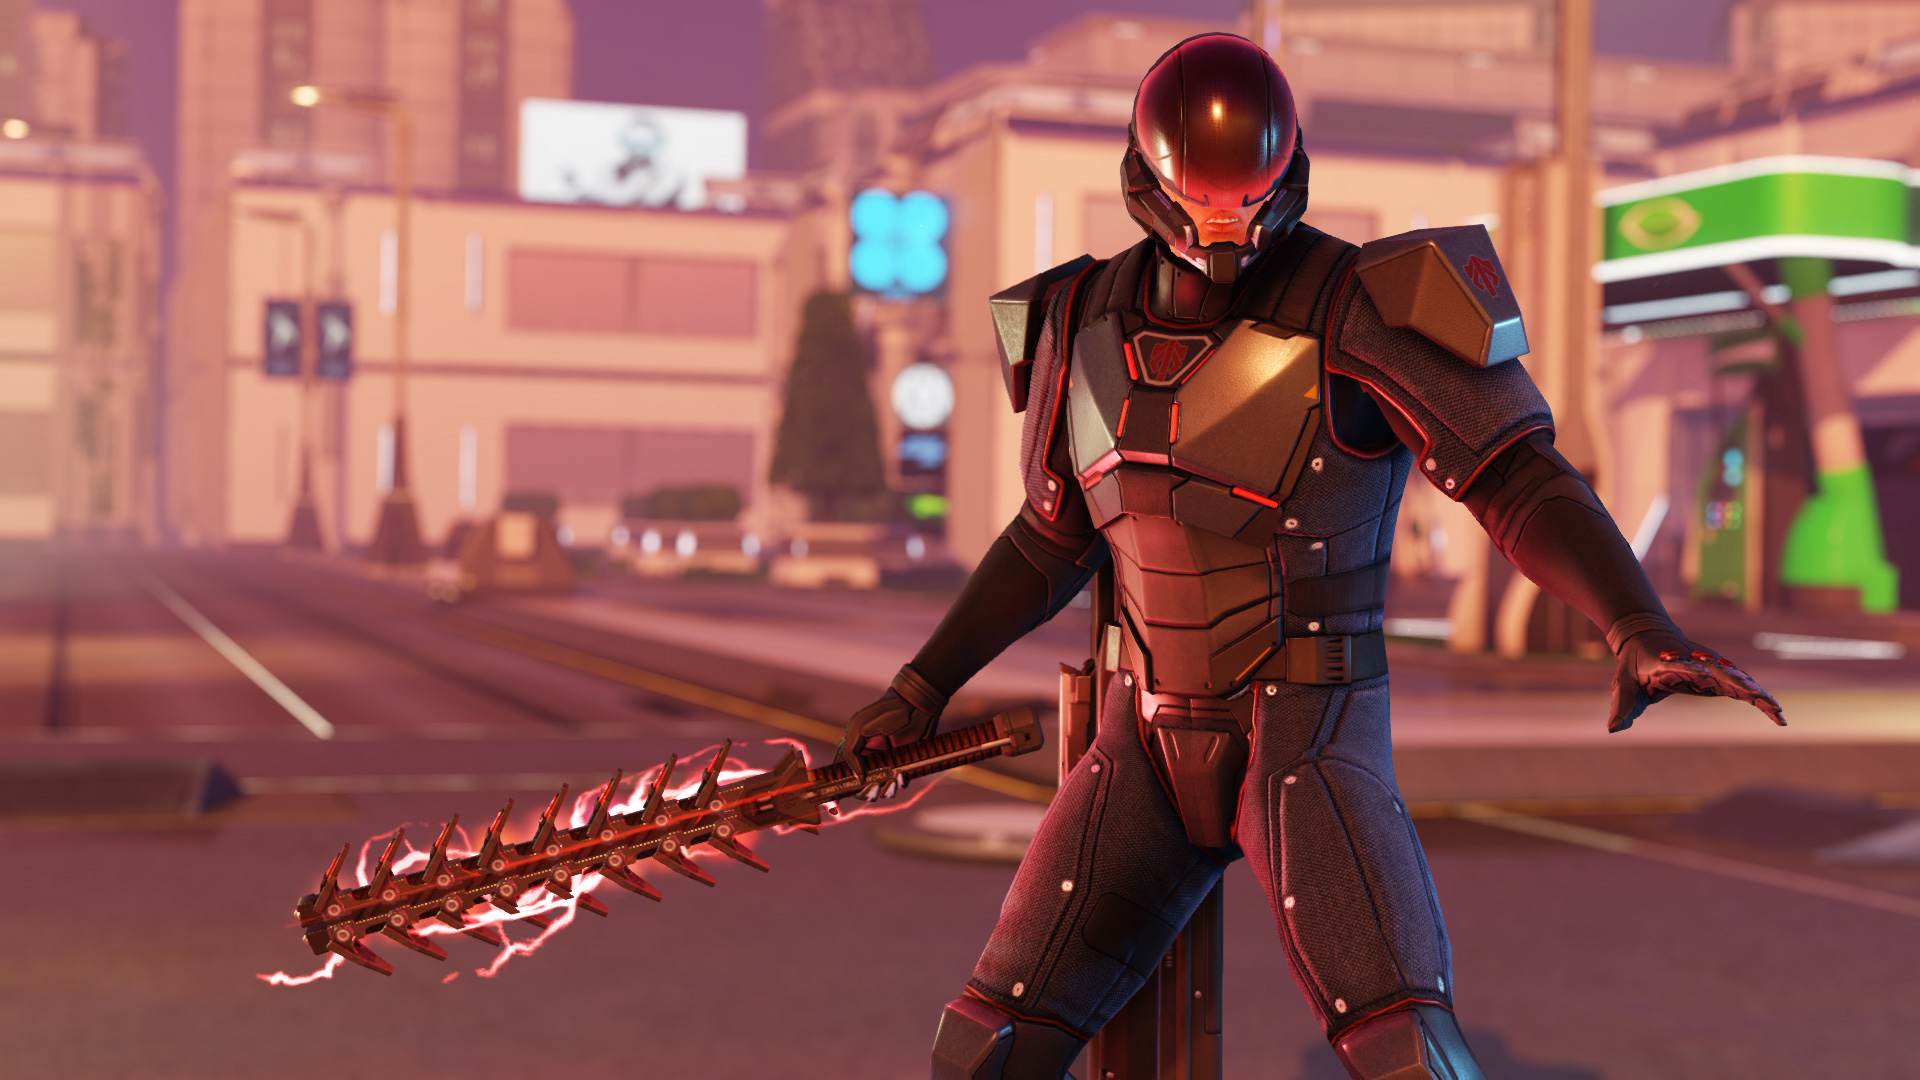 FR - XCOM 2's ADVENT Stun Lancer Will Do Anything to Get Nea